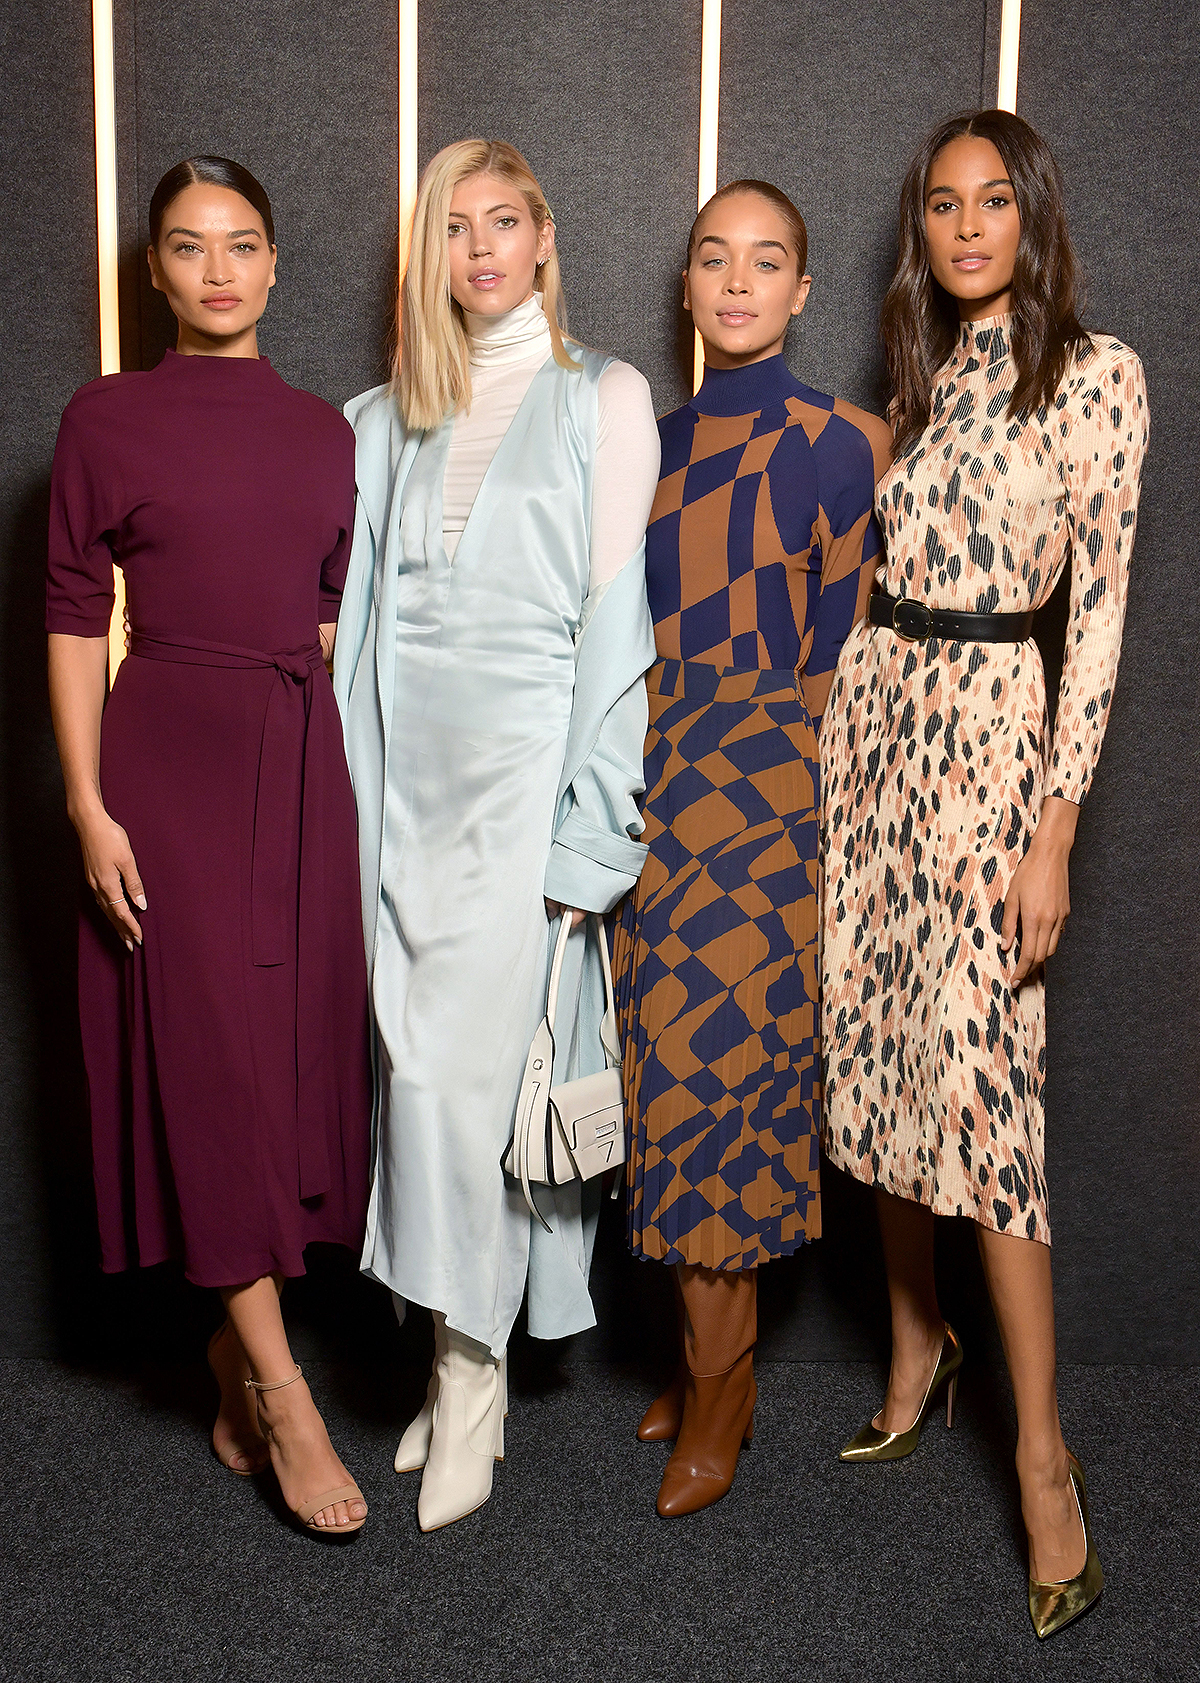 Boss show, Front Row, Fall Winter 2019, New York Fashion Week, USA - 13 Feb 2019